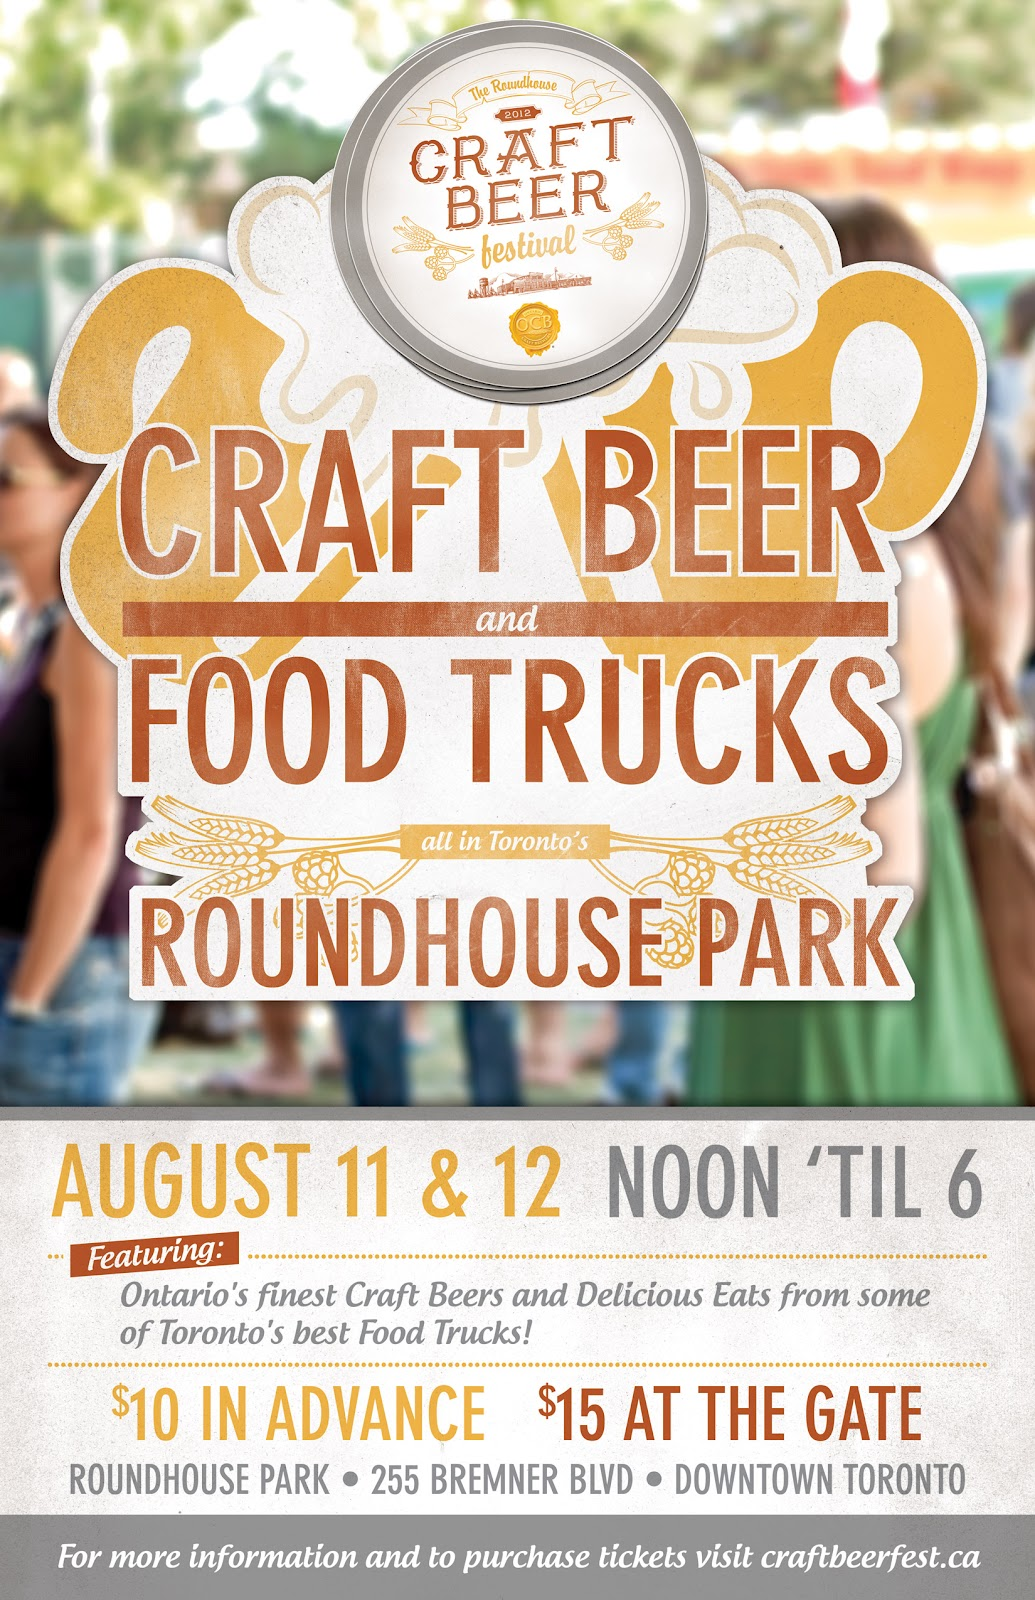 Roundhouse craft beer festival toronto august 11 12 2012 for Craft beer festival toronto